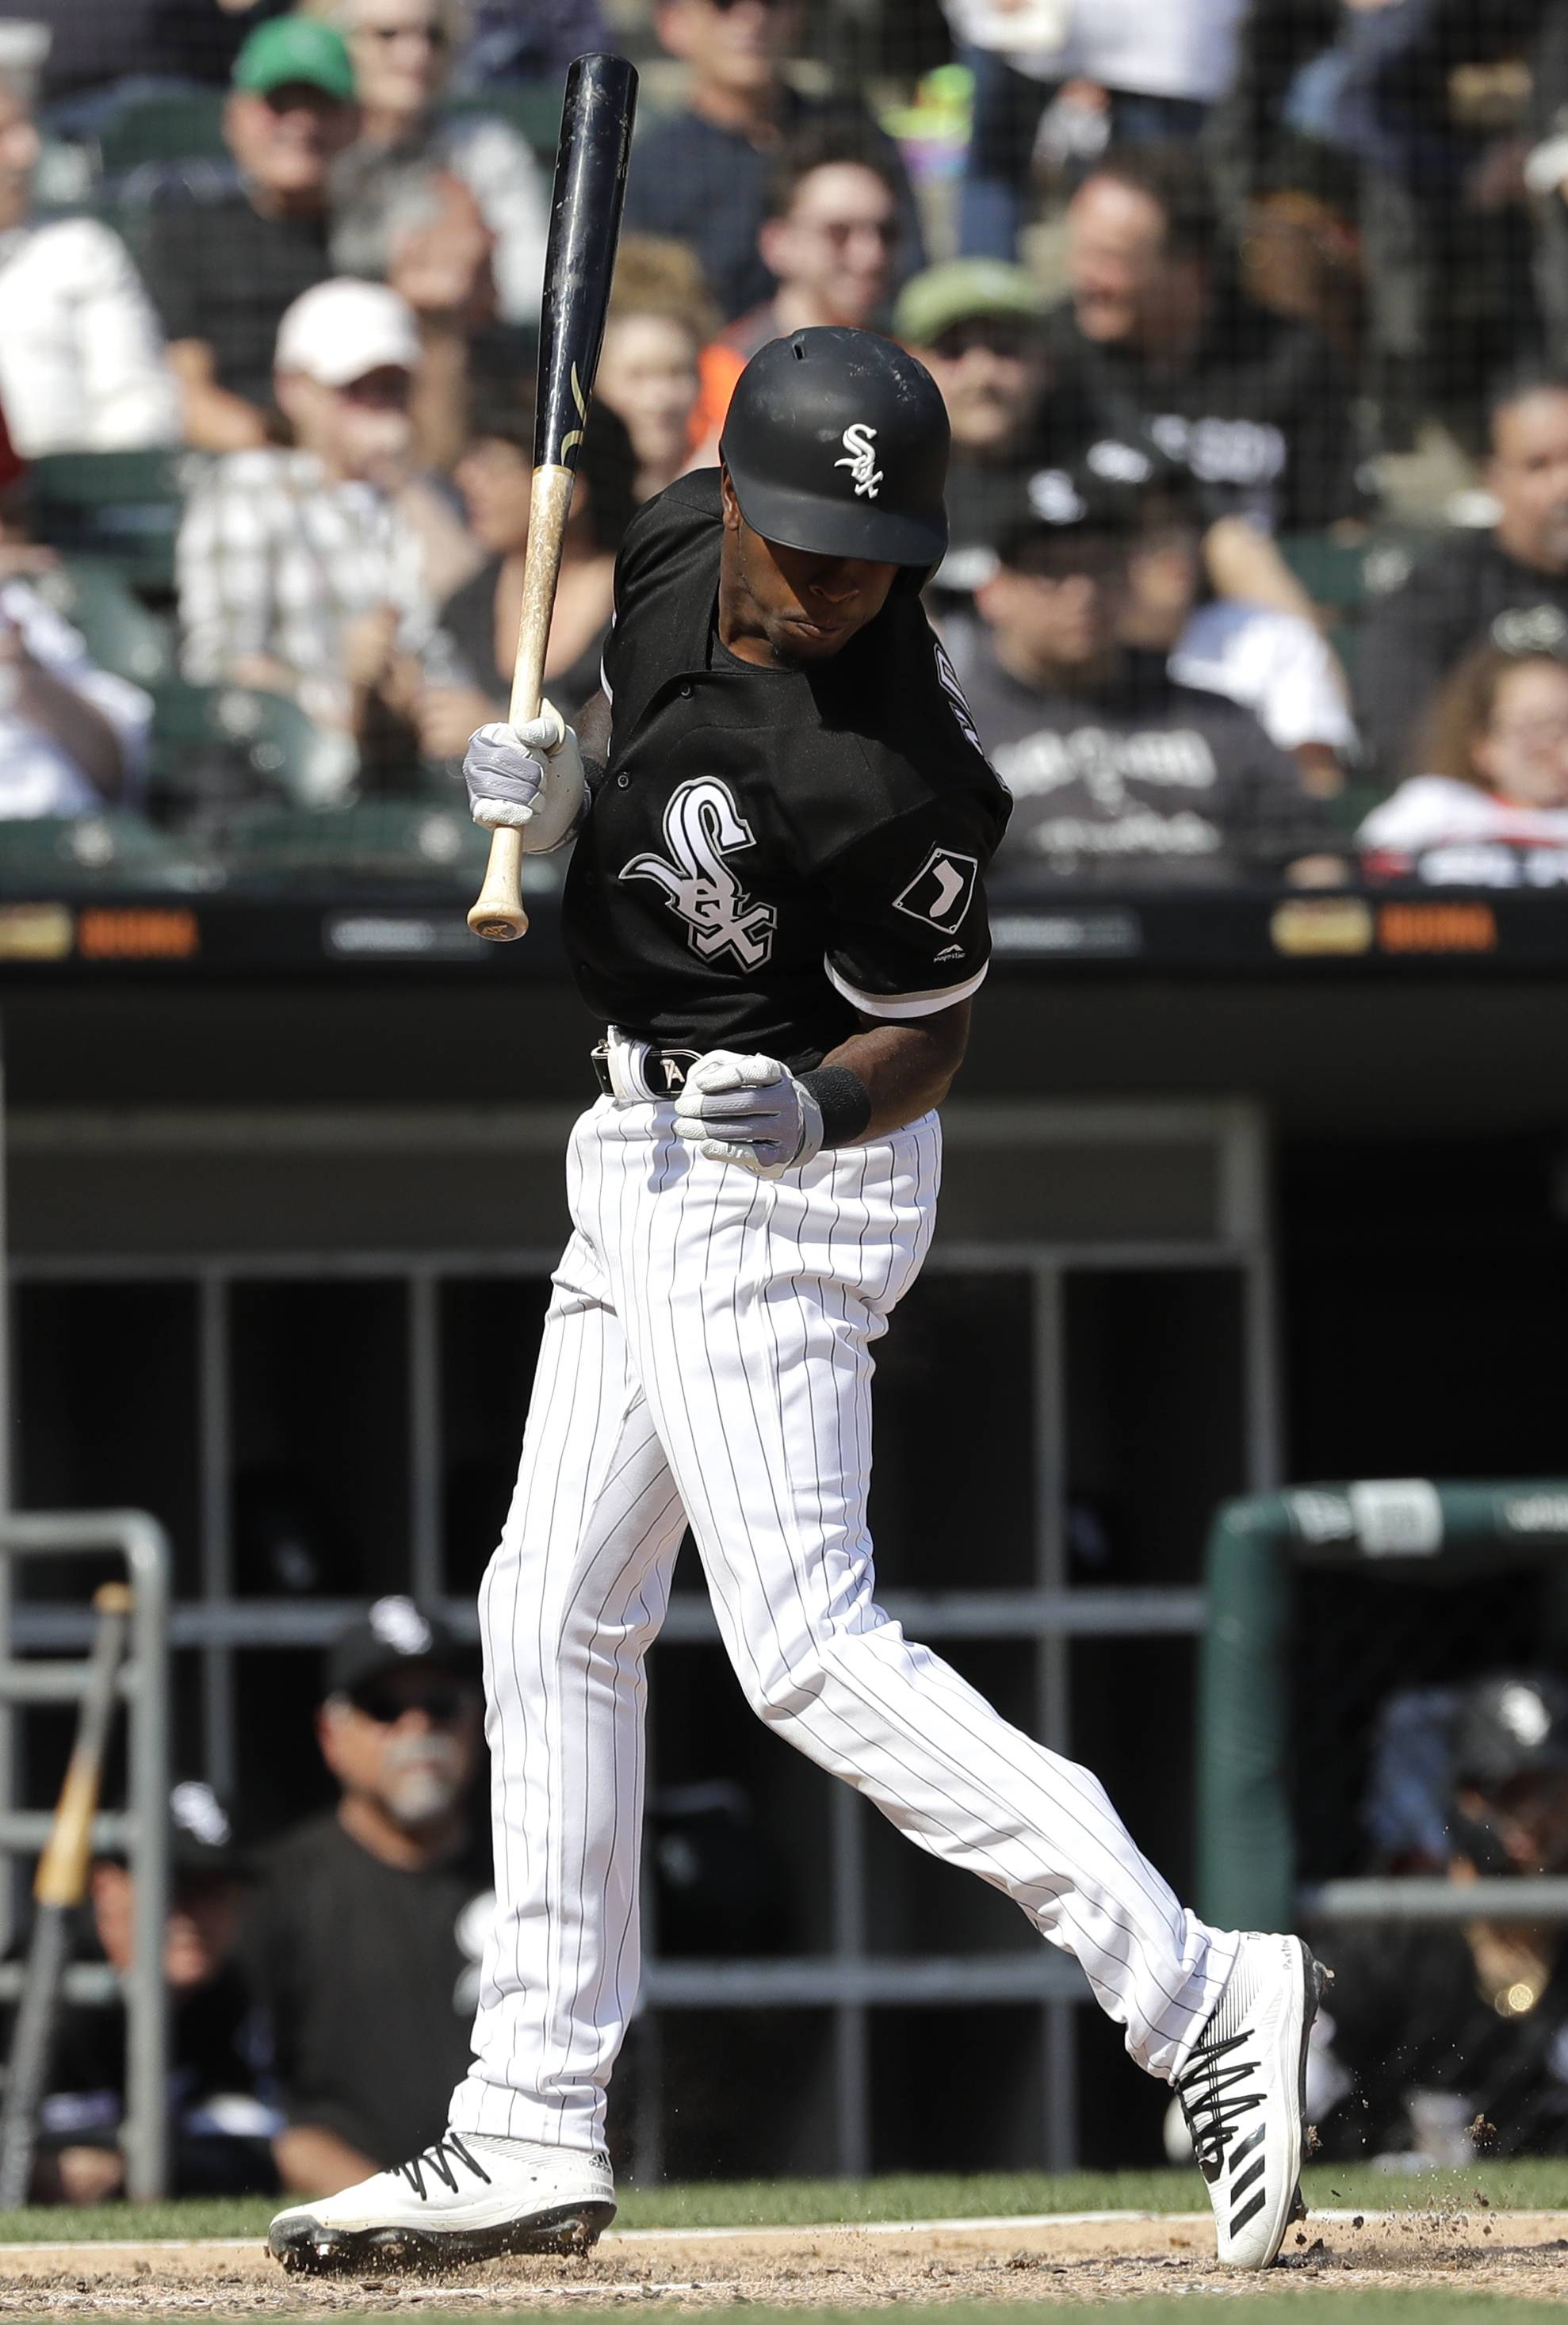 The Sox's Tim Anderson is hit by a pitch from Kansas City's Brad Keller during Wednesday's game, leading to the benches emptying. Major League Baseball announced Friday Anderson, Sox manager Rick Renteria and Keller were suspended and fined.